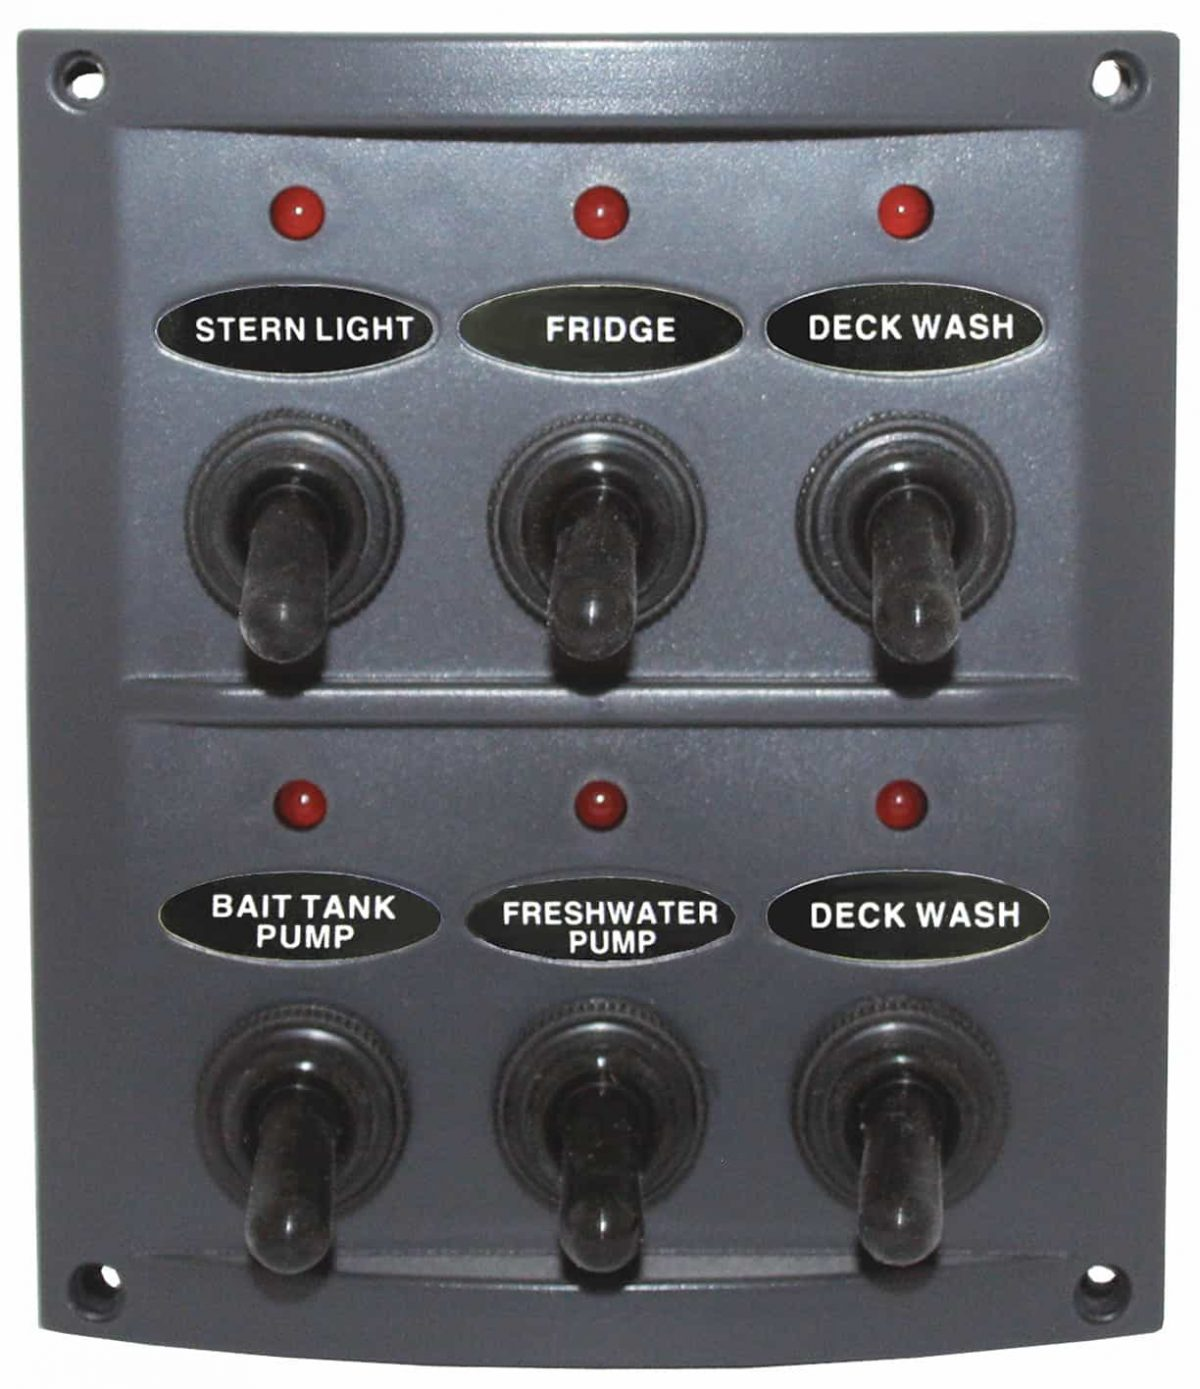 6 Switch Panel Deluxe Grey Splashproof